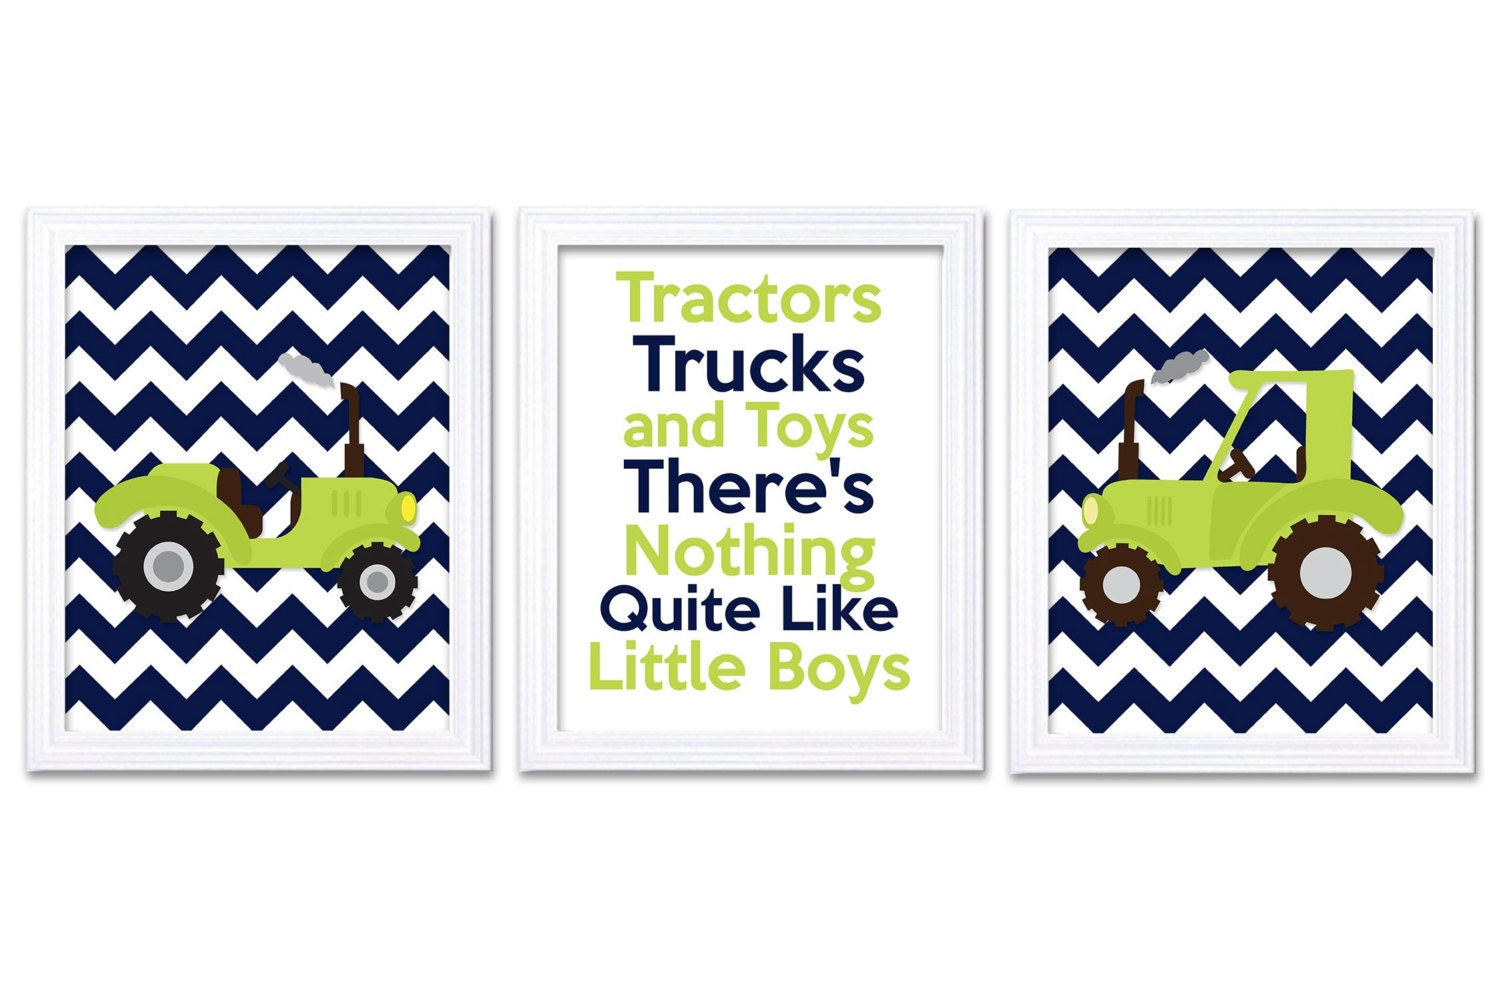 Nursery Art Tractors Trucks and Toys Theres Nothing Quite Like Little Boys Print Set of 3 Navy Blue